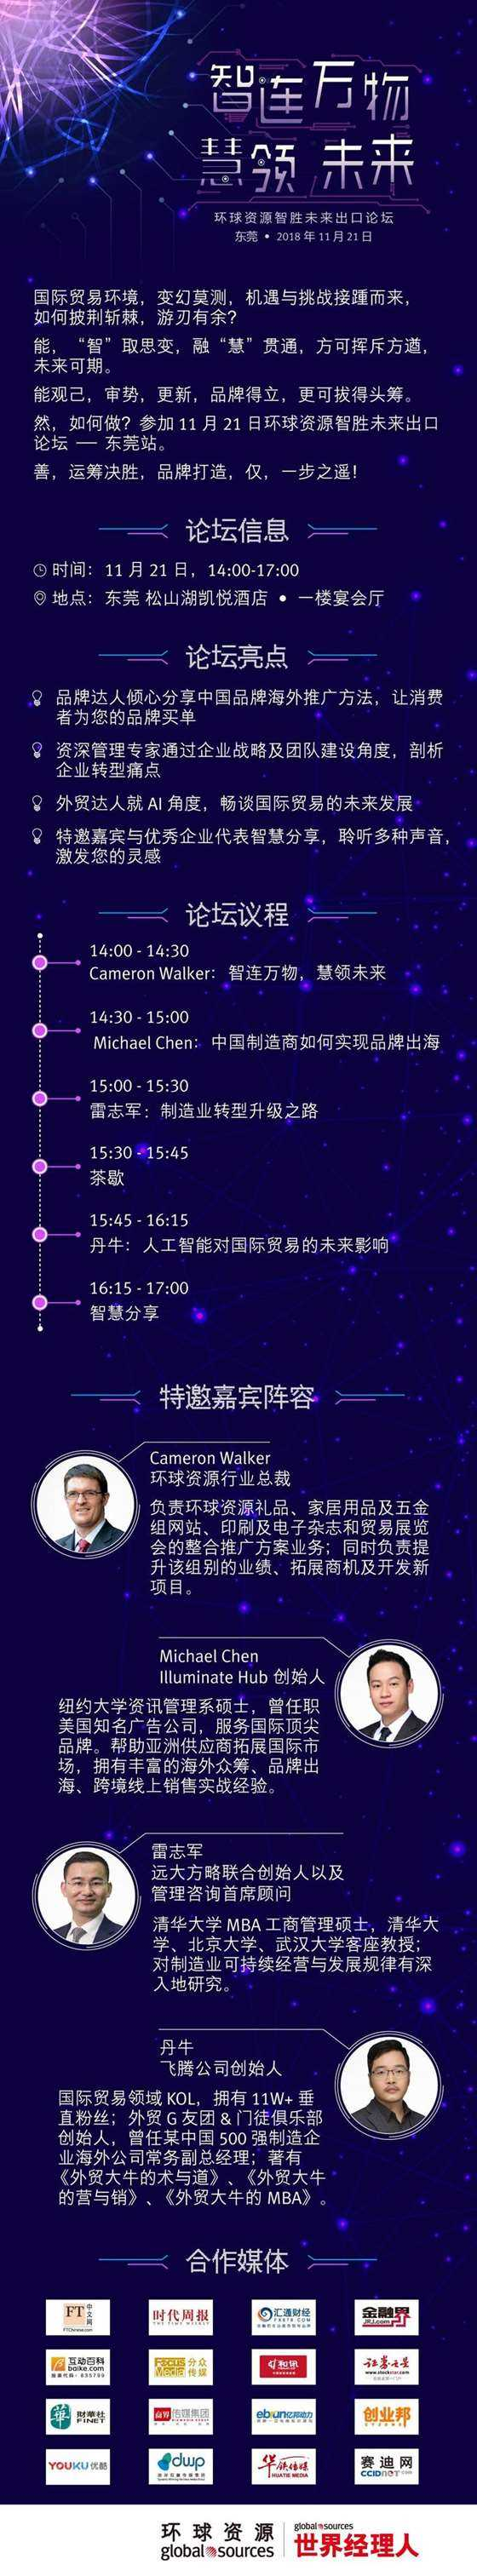 1810@Forum 20181121 DG_170 invitation_不带二维码.jpg